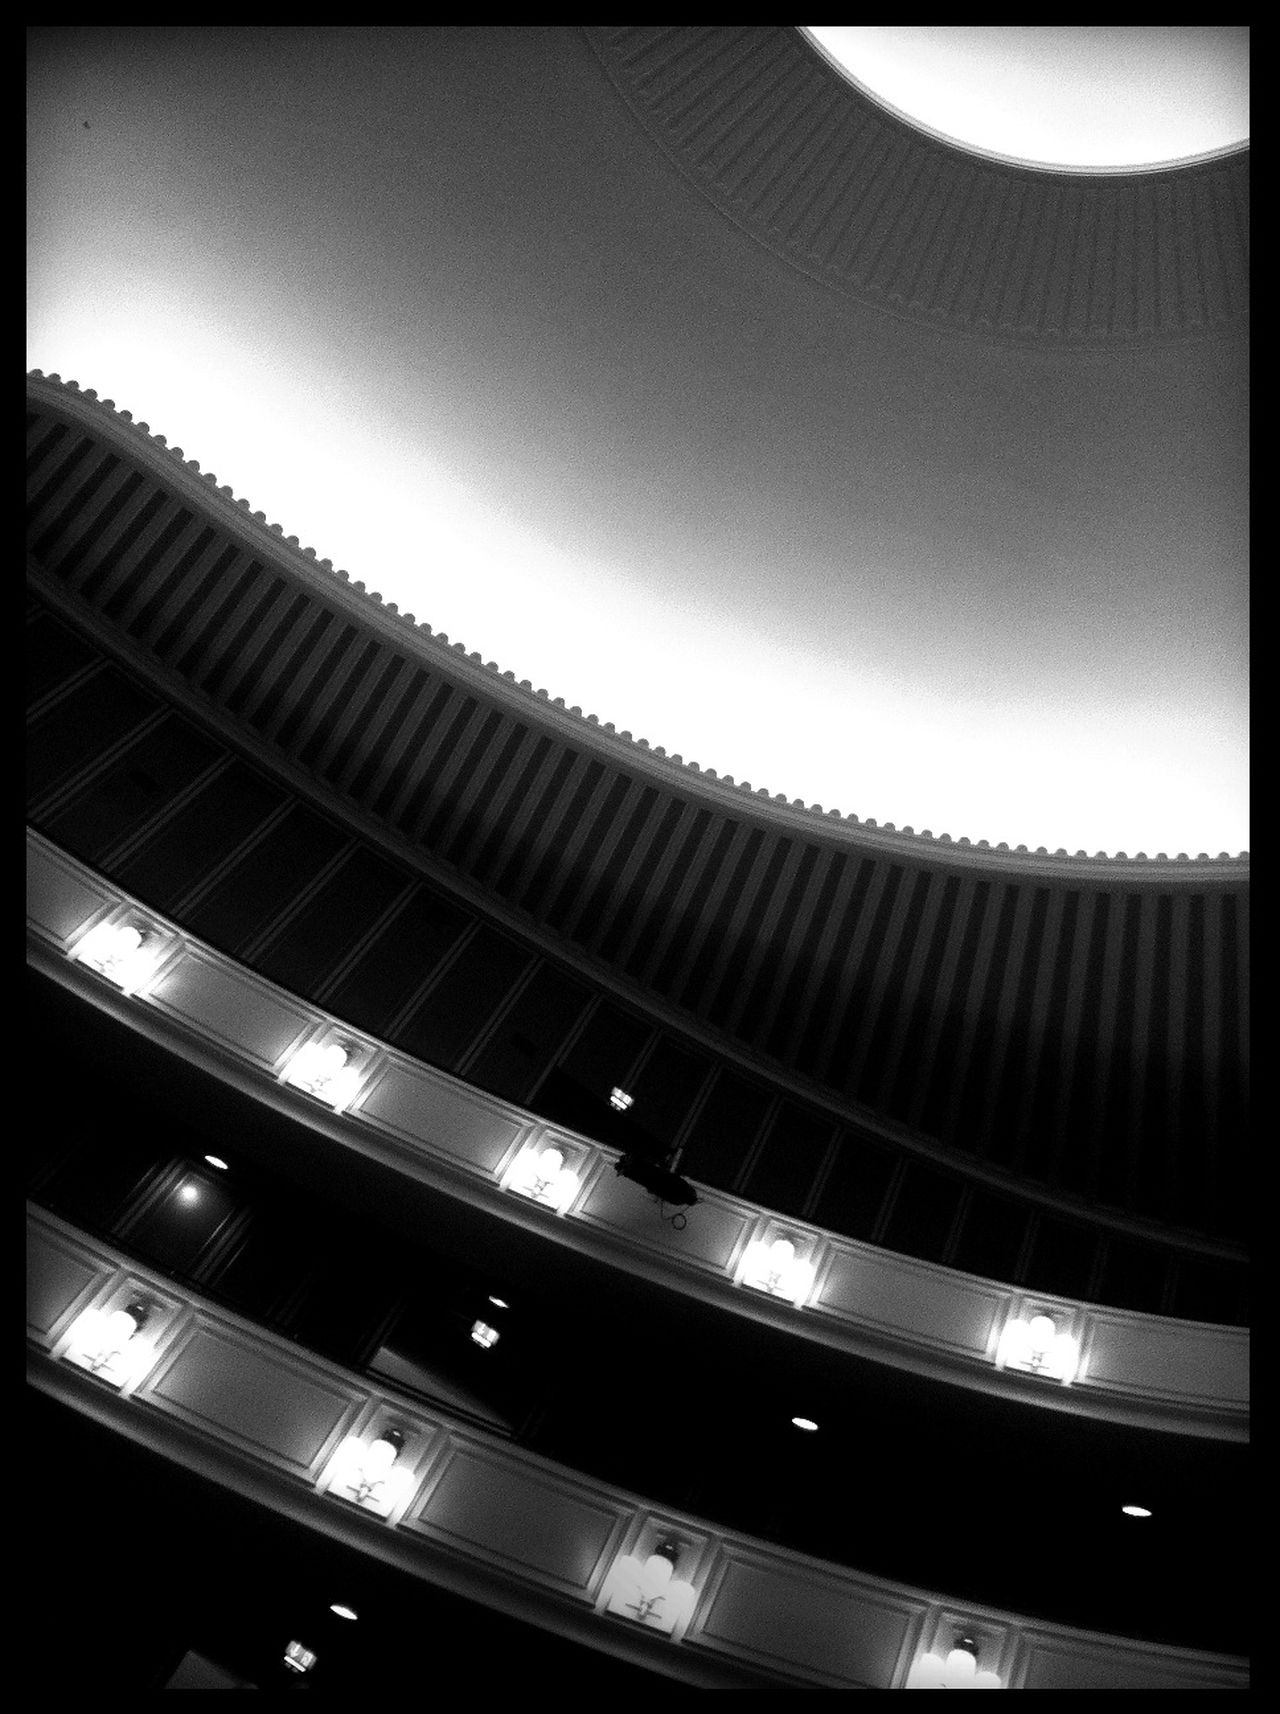 Waiting for Tanzsuite at Deutsche Oper am Rhein Duesseldorf Waiting For Tanzsuite